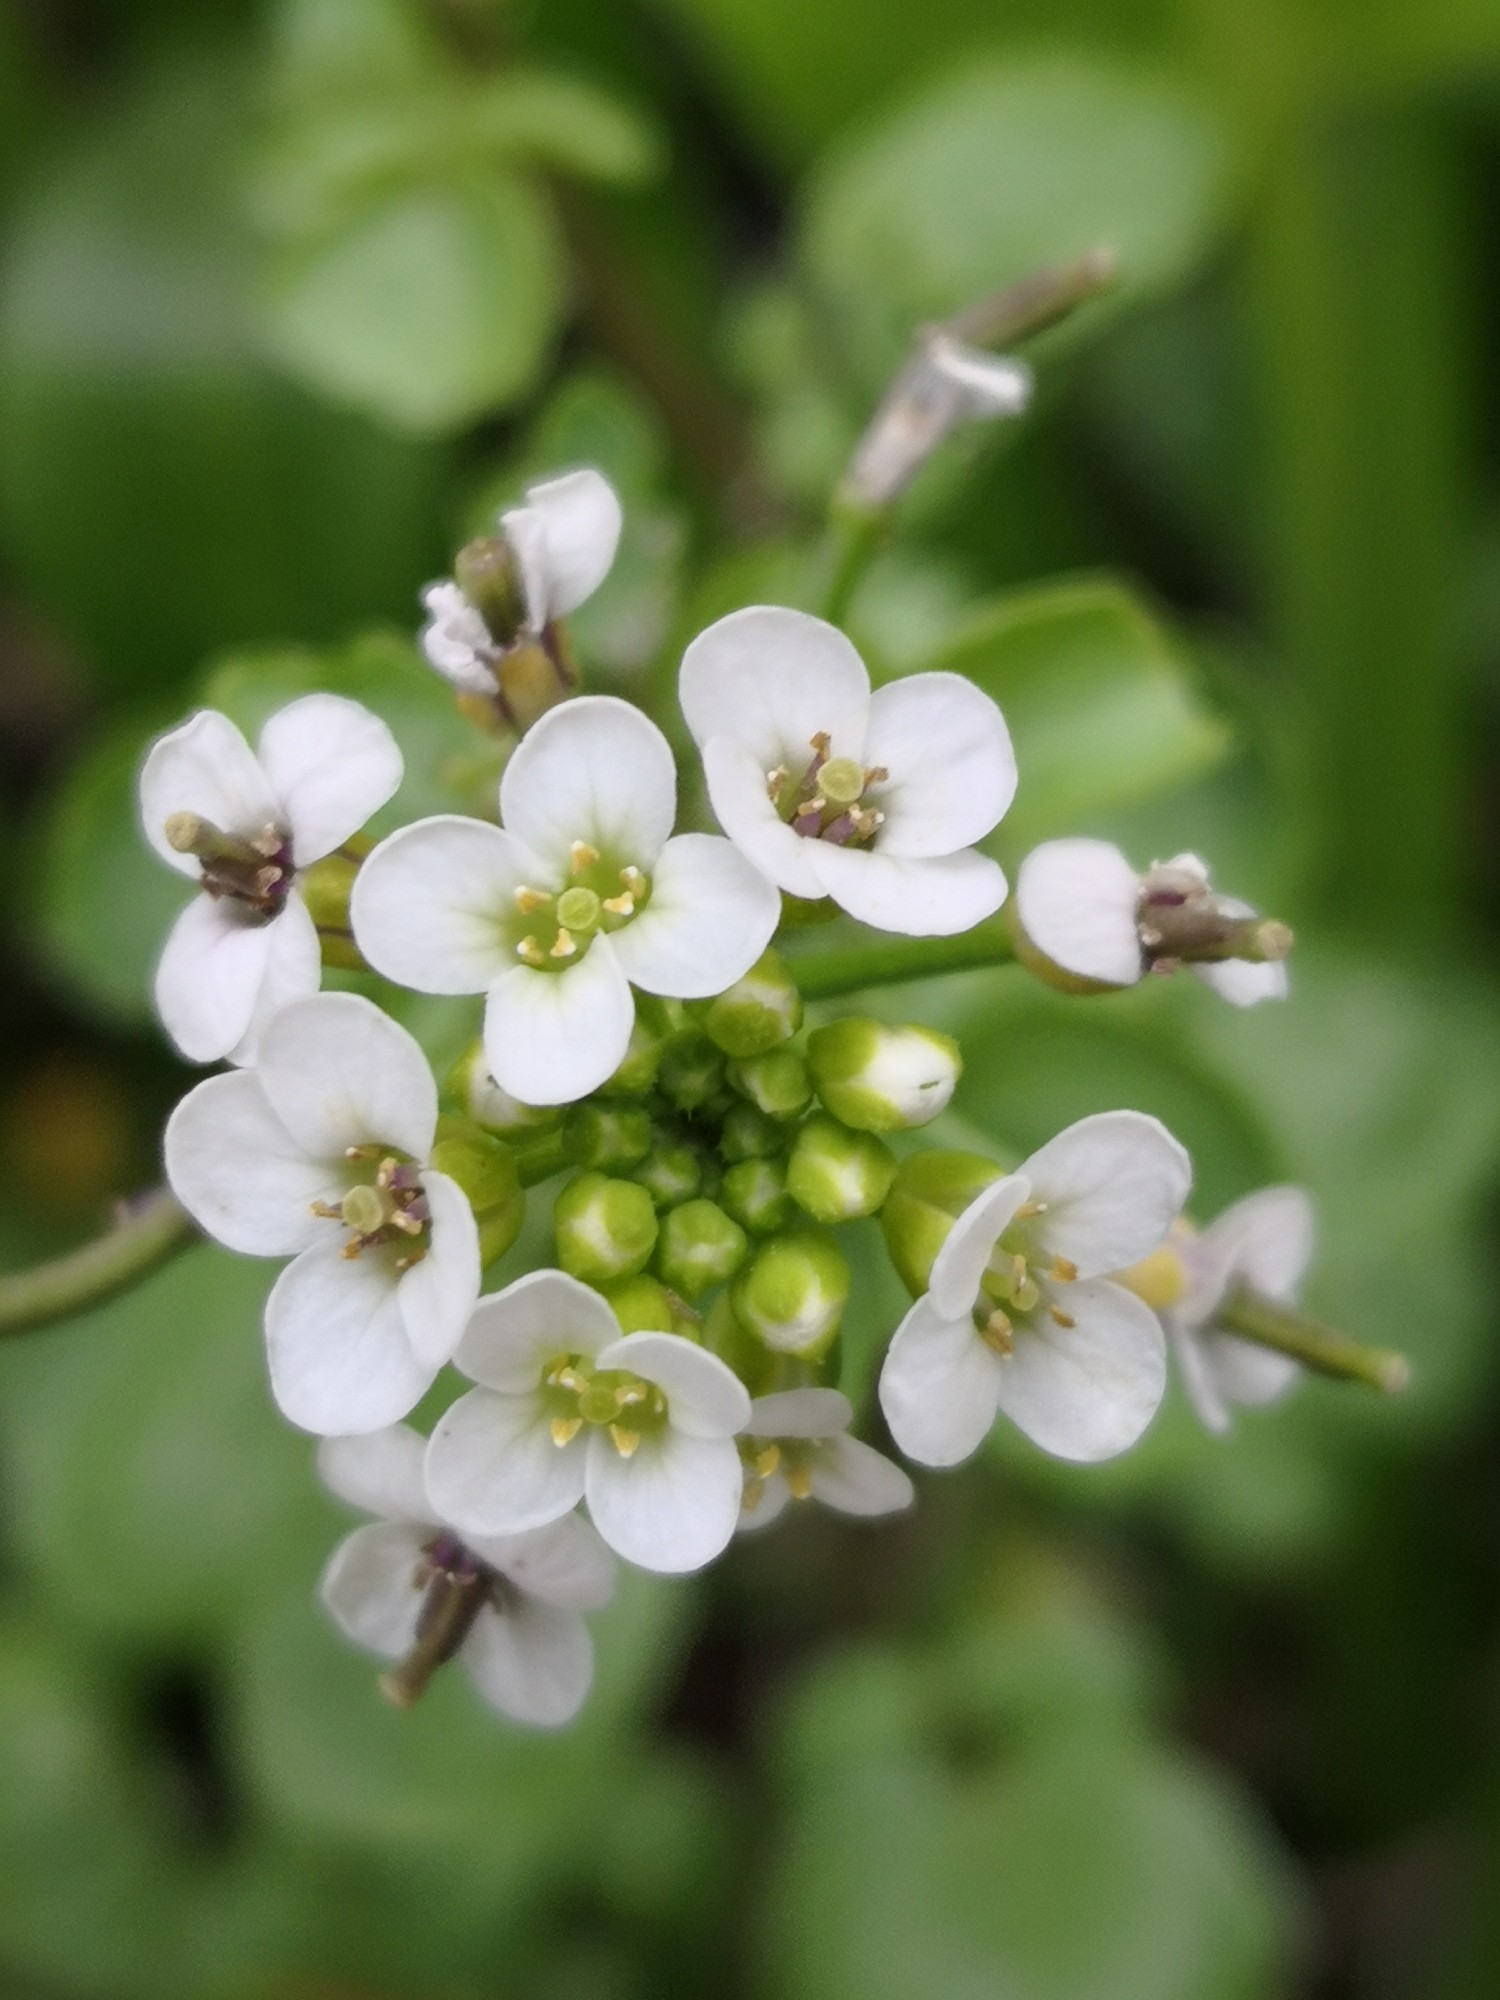 Watercress has small white and green flowers.